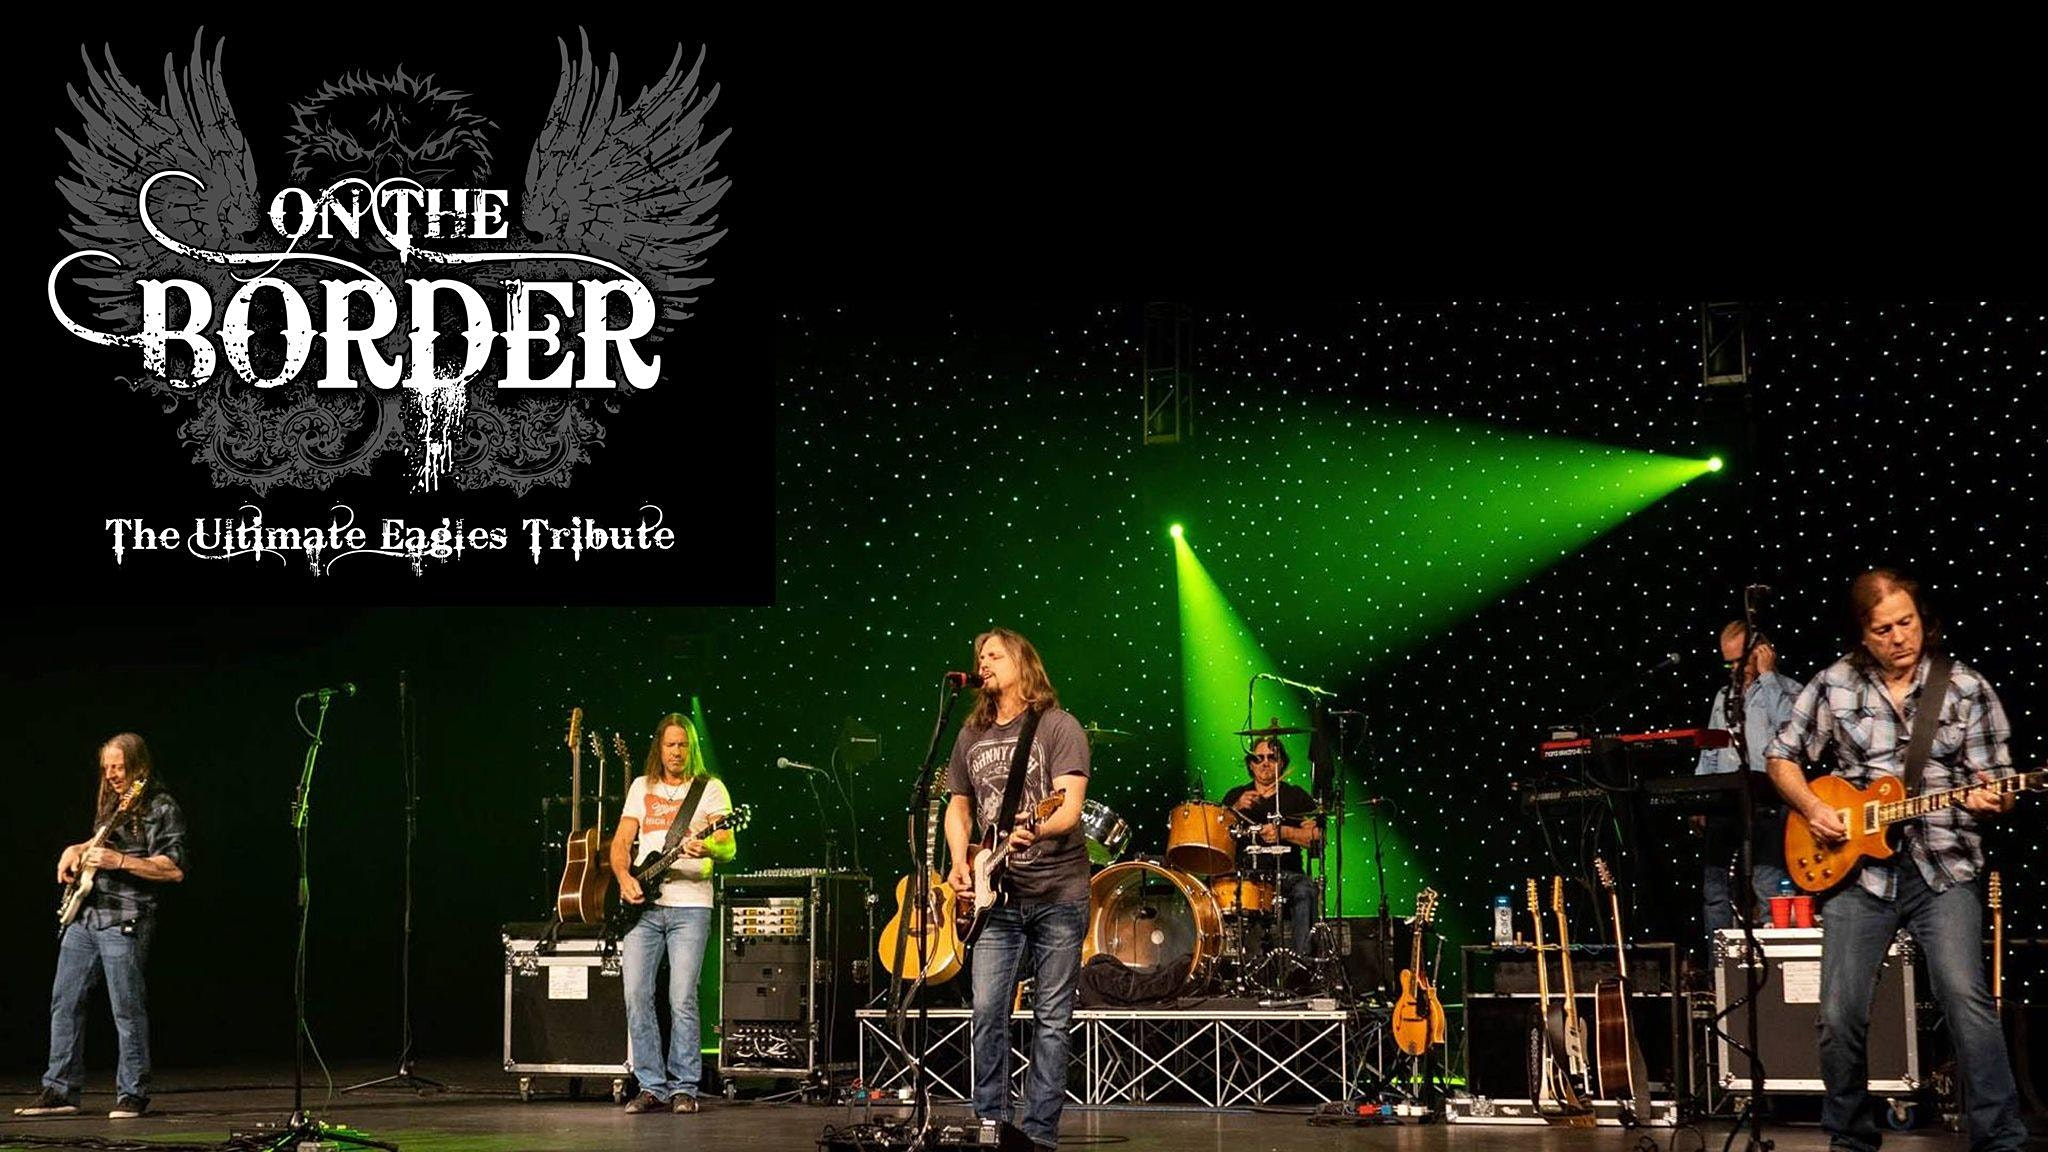 On the Border – The Ultimate Eagles Tribute